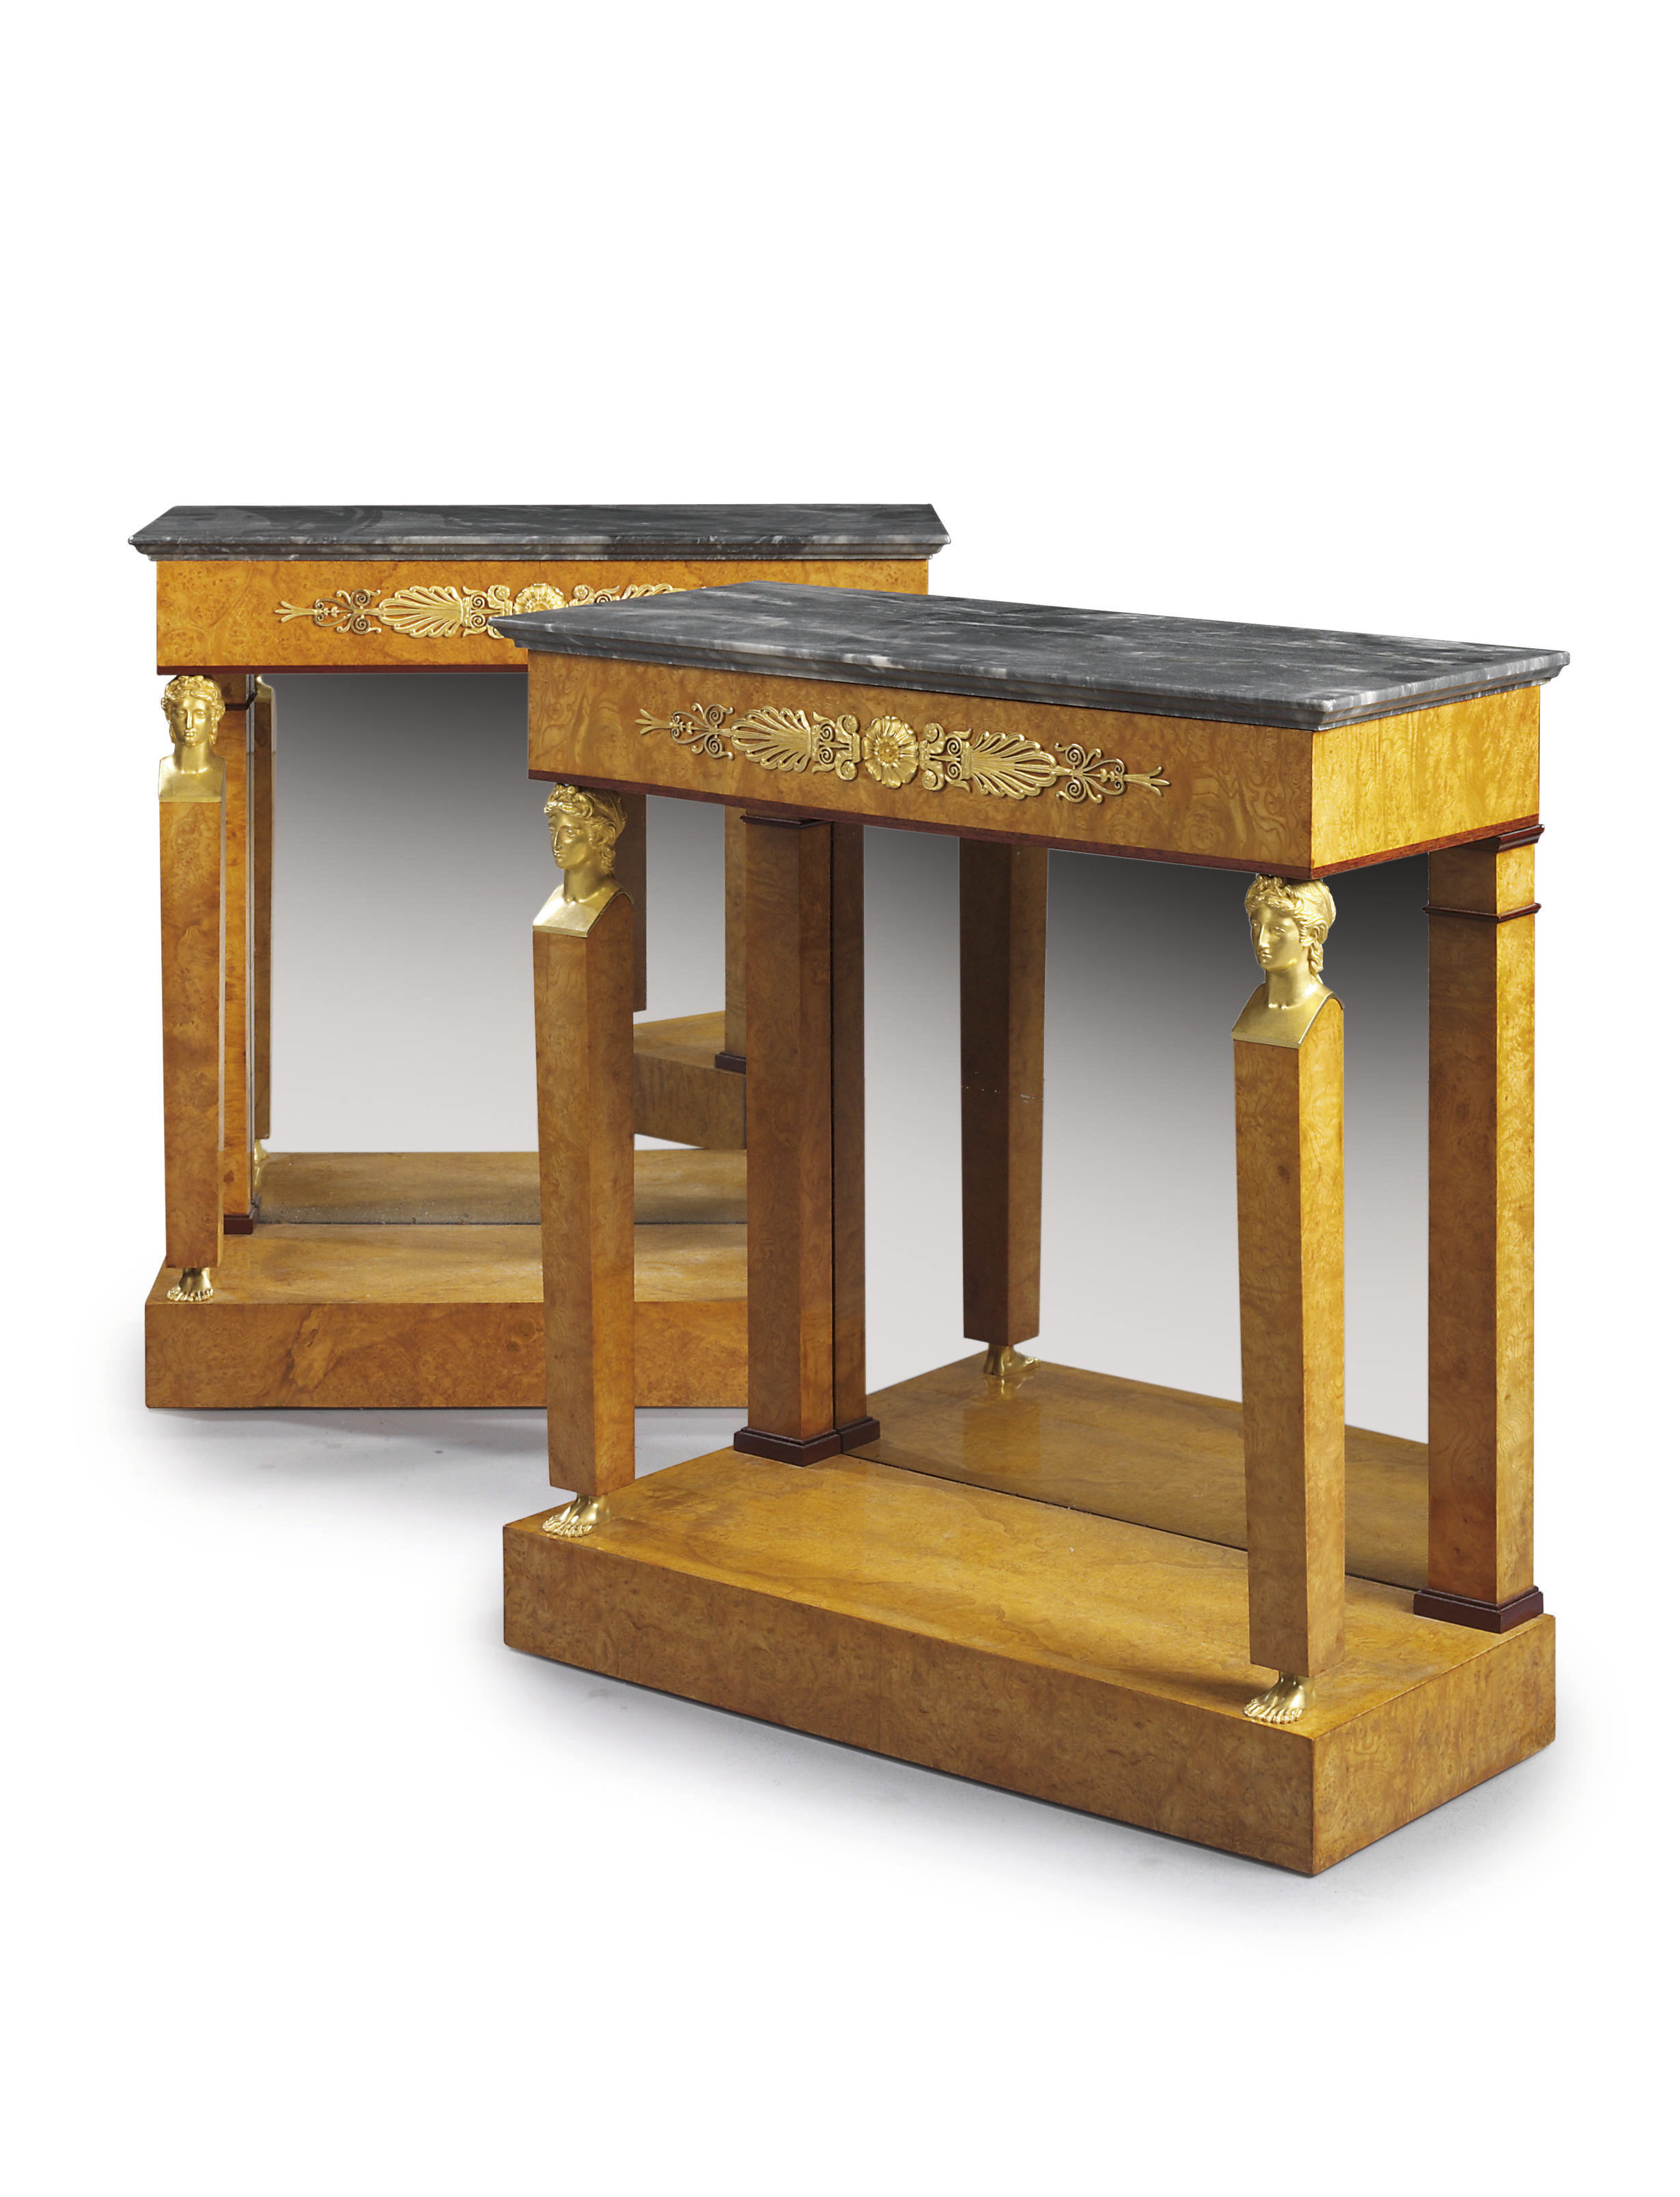 A PAIR OF EMPIRE ORMOLU-MOUNTED BURR-ELM AND AMARANTH CONSOLE TABLES